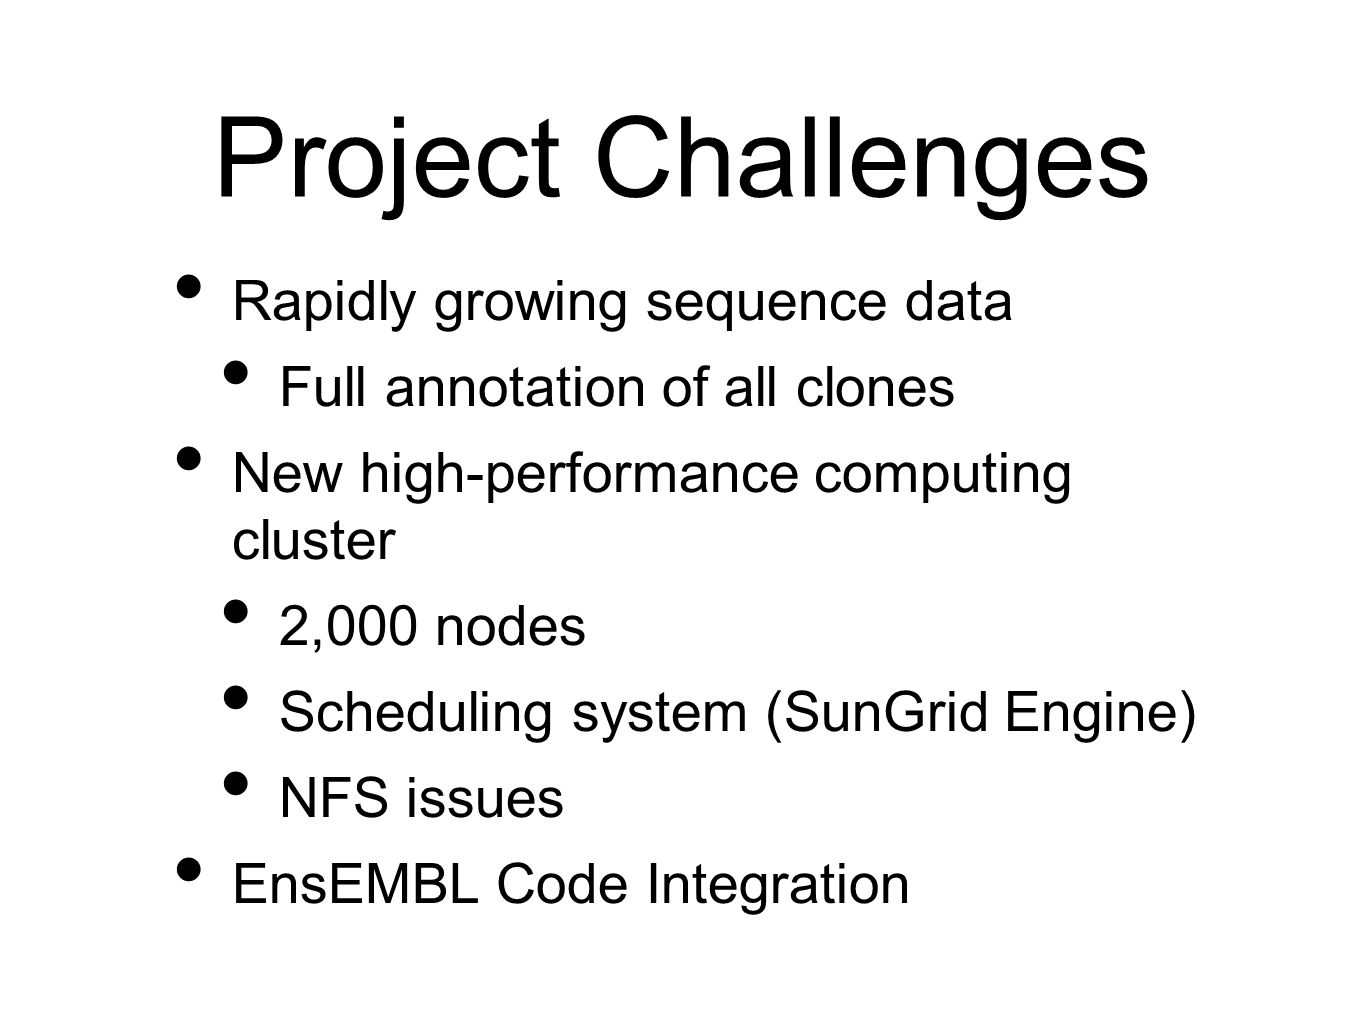 Project Challenges Rapidly growing sequence data Full annotation of all clones New high-performance computing cluster 2,000 nodes Scheduling system (SunGrid Engine) NFS issues EnsEMBL Code Integration